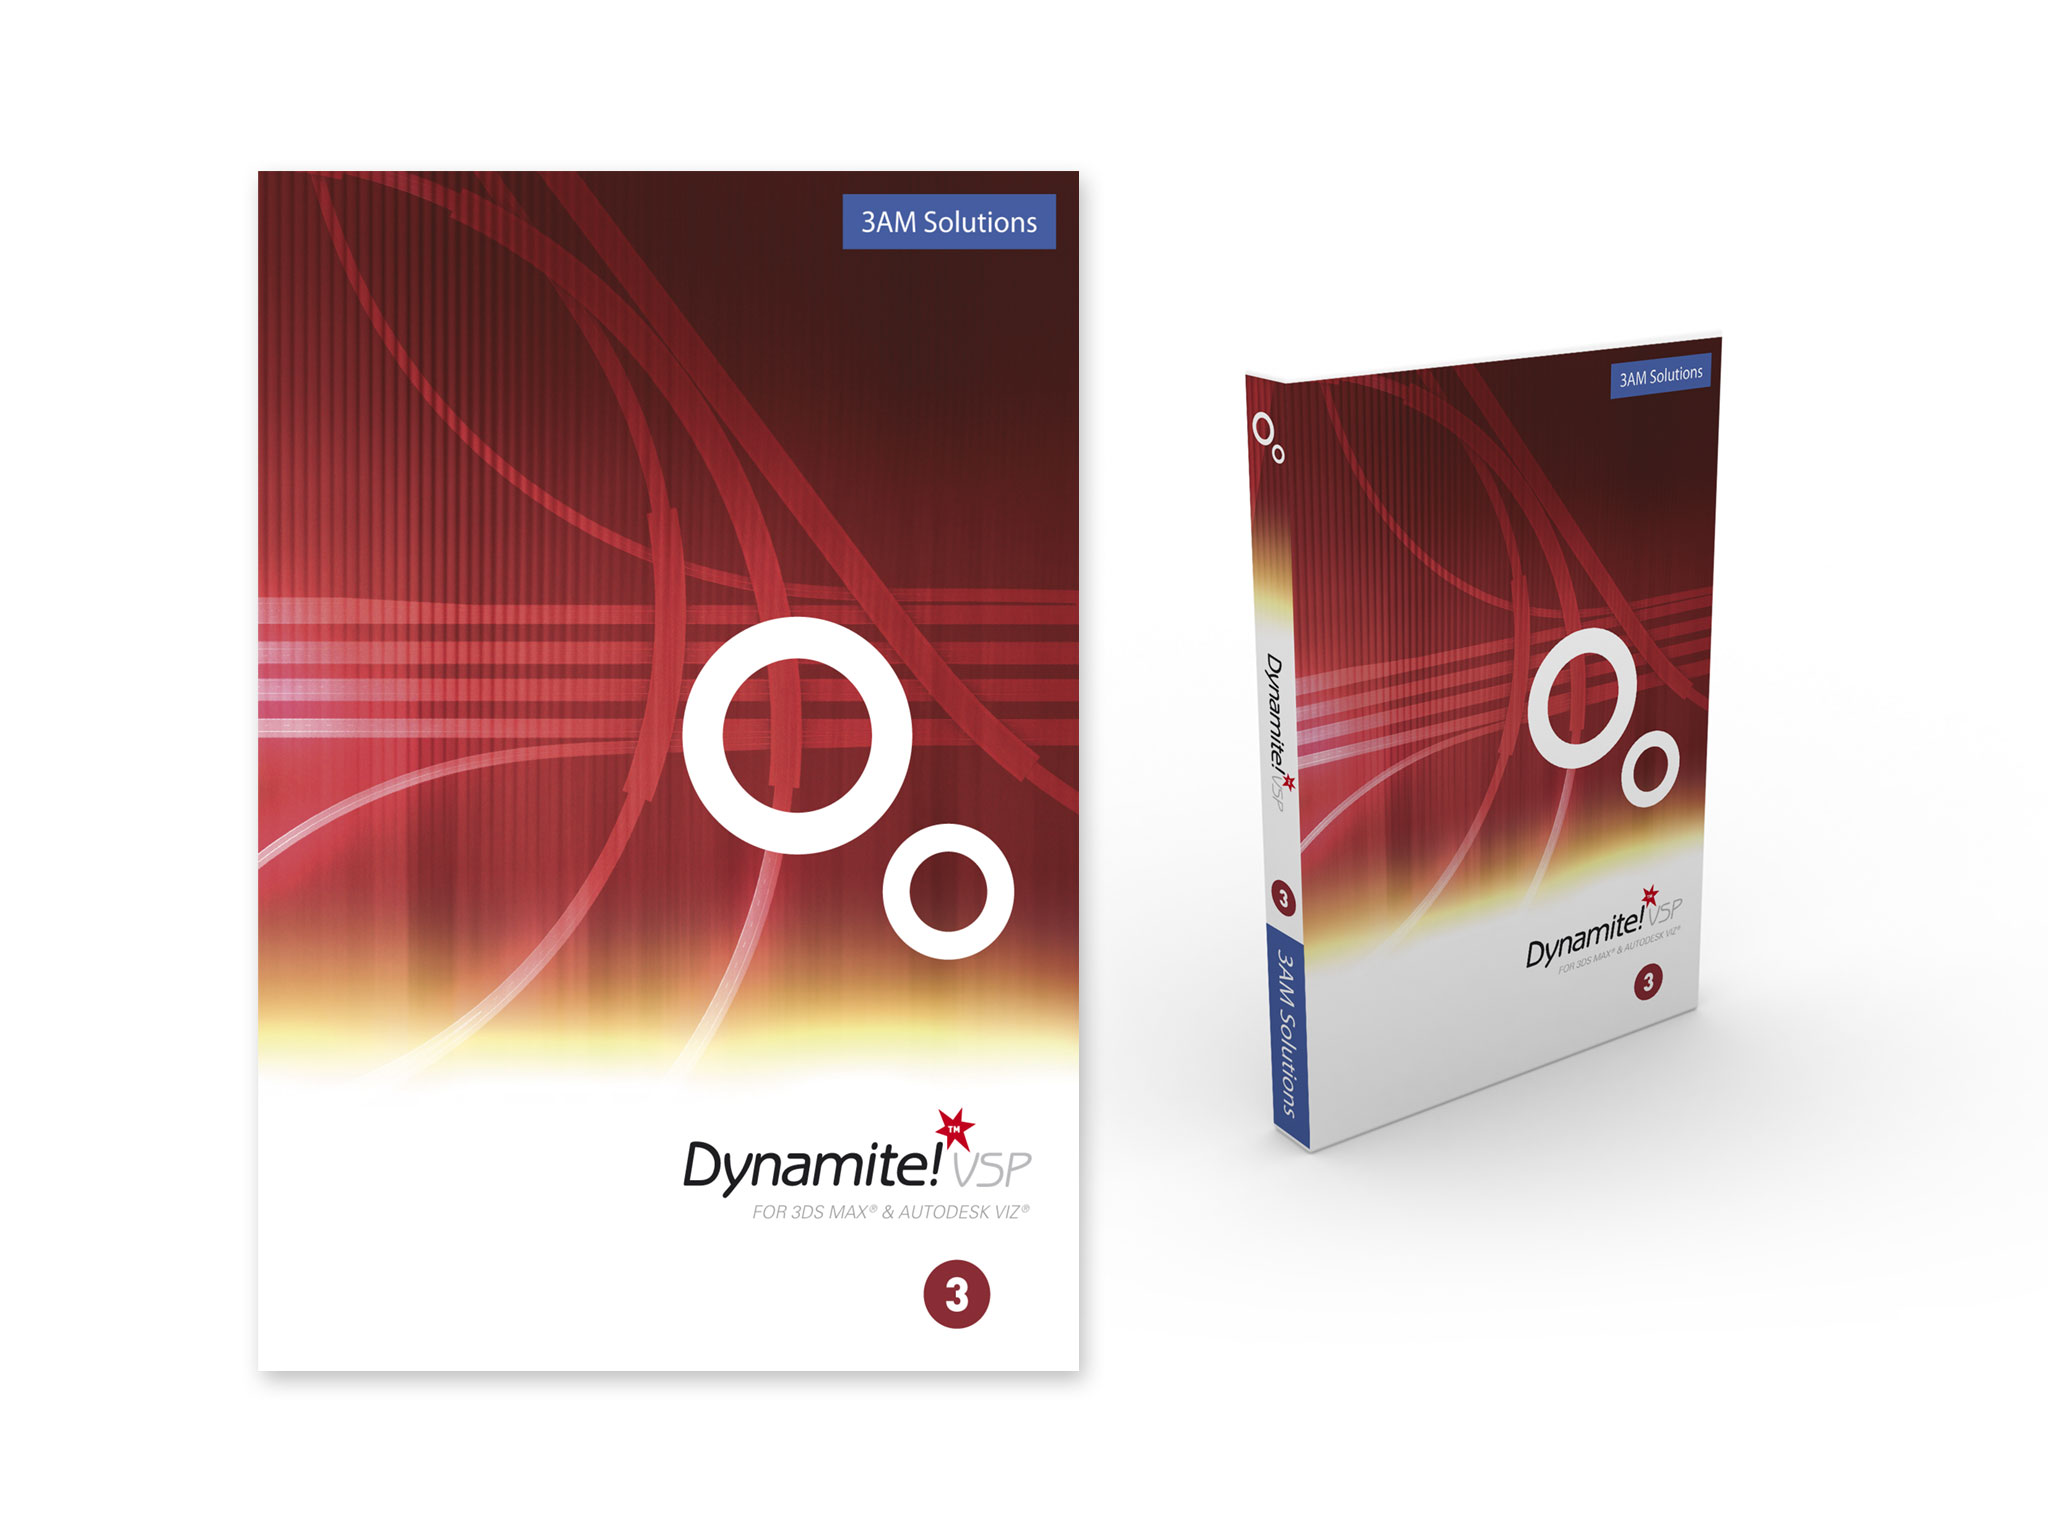 Product shot of DVD packaging for Dynamite VSP software